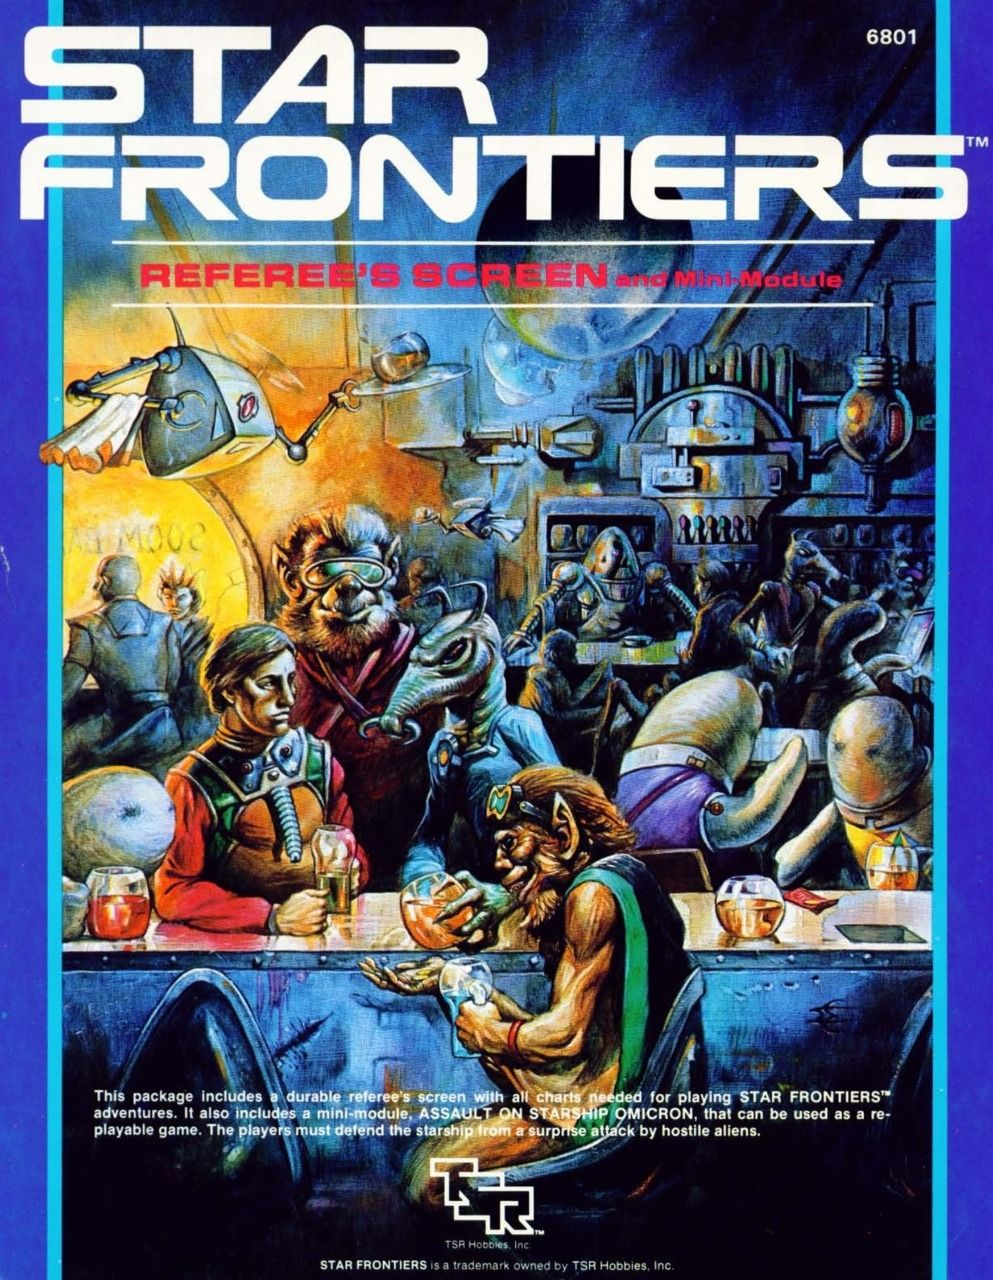 Pin by Addie Zachmann on star frontiers in 2019 Classic